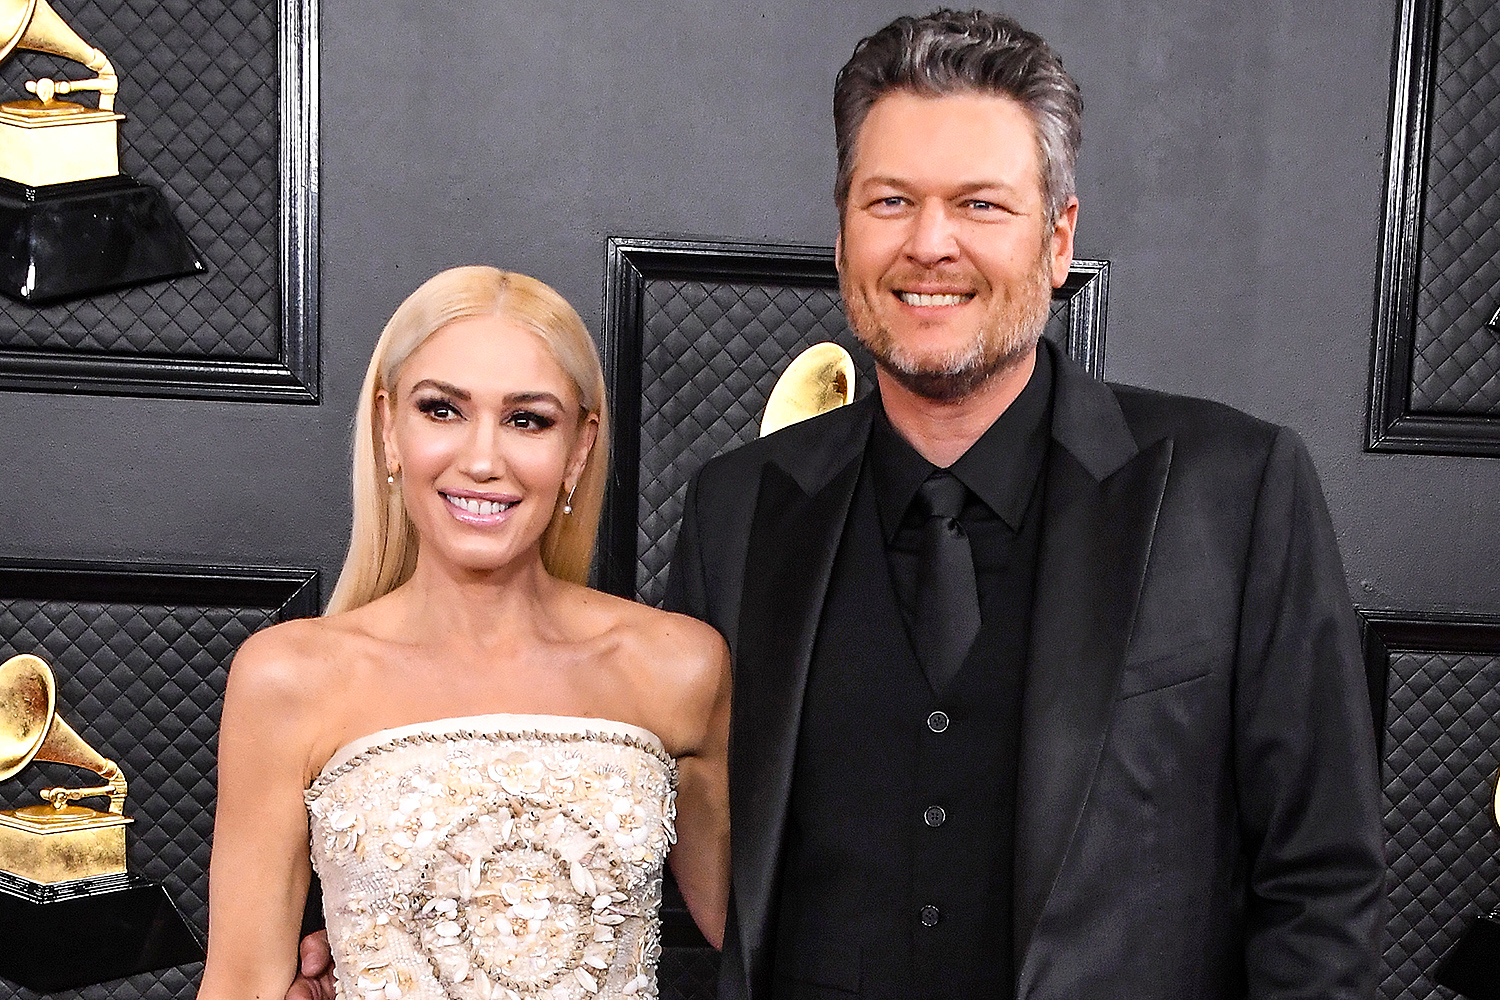 Gwen Stefani And Blake Shelton 'Exploring Their Options' To Have A Baby